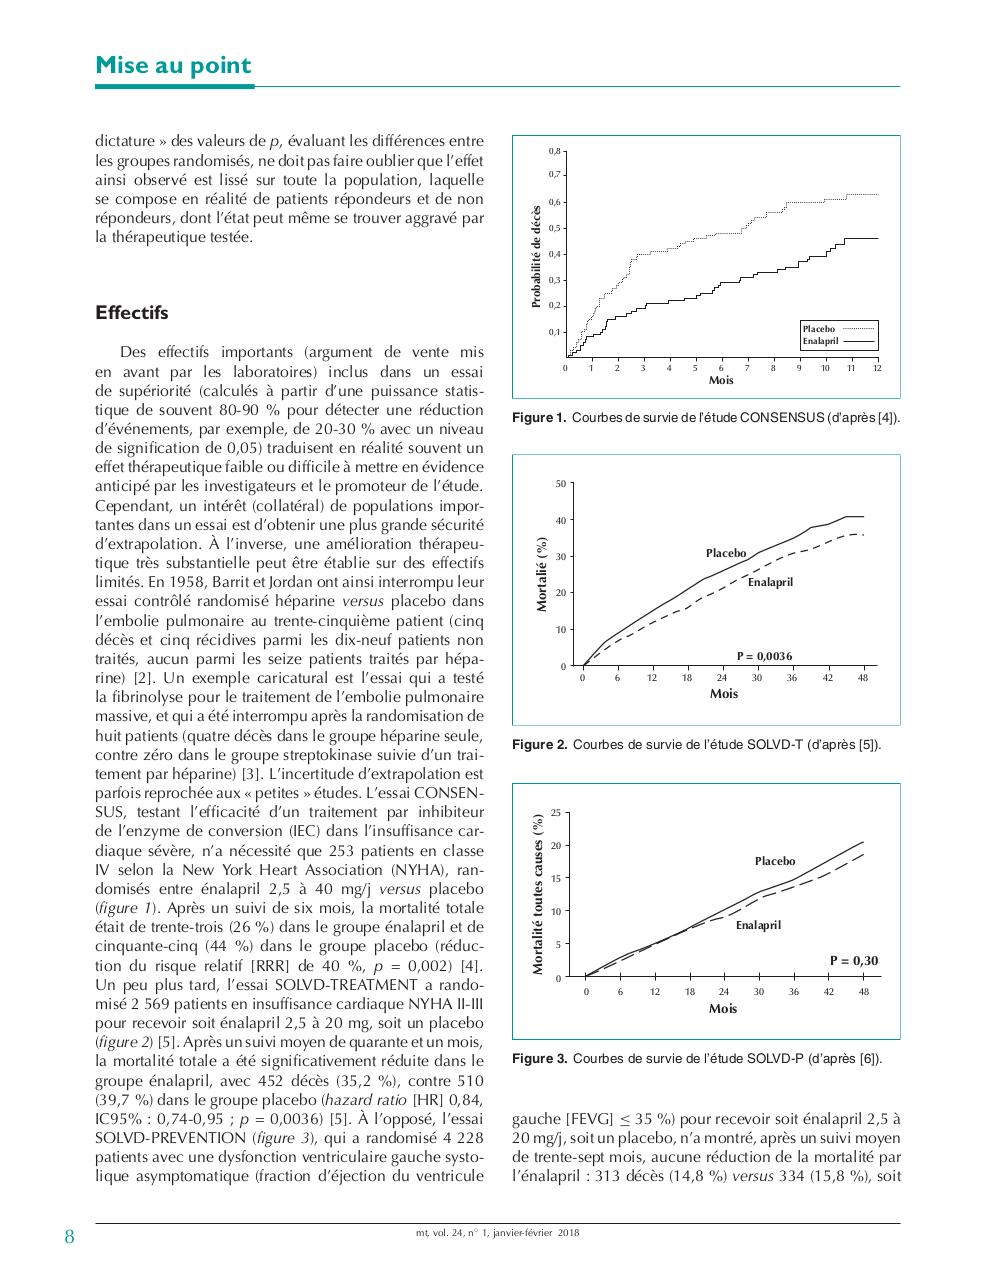 met-311349-approche_critique_des_essais_therapeutiques_randomises_evoluer_vers_une_medecine_personnalisee-pvennezat-WwGJZn8AAQEAAAfeqj0AAAAD-u.pdf - page 2/11